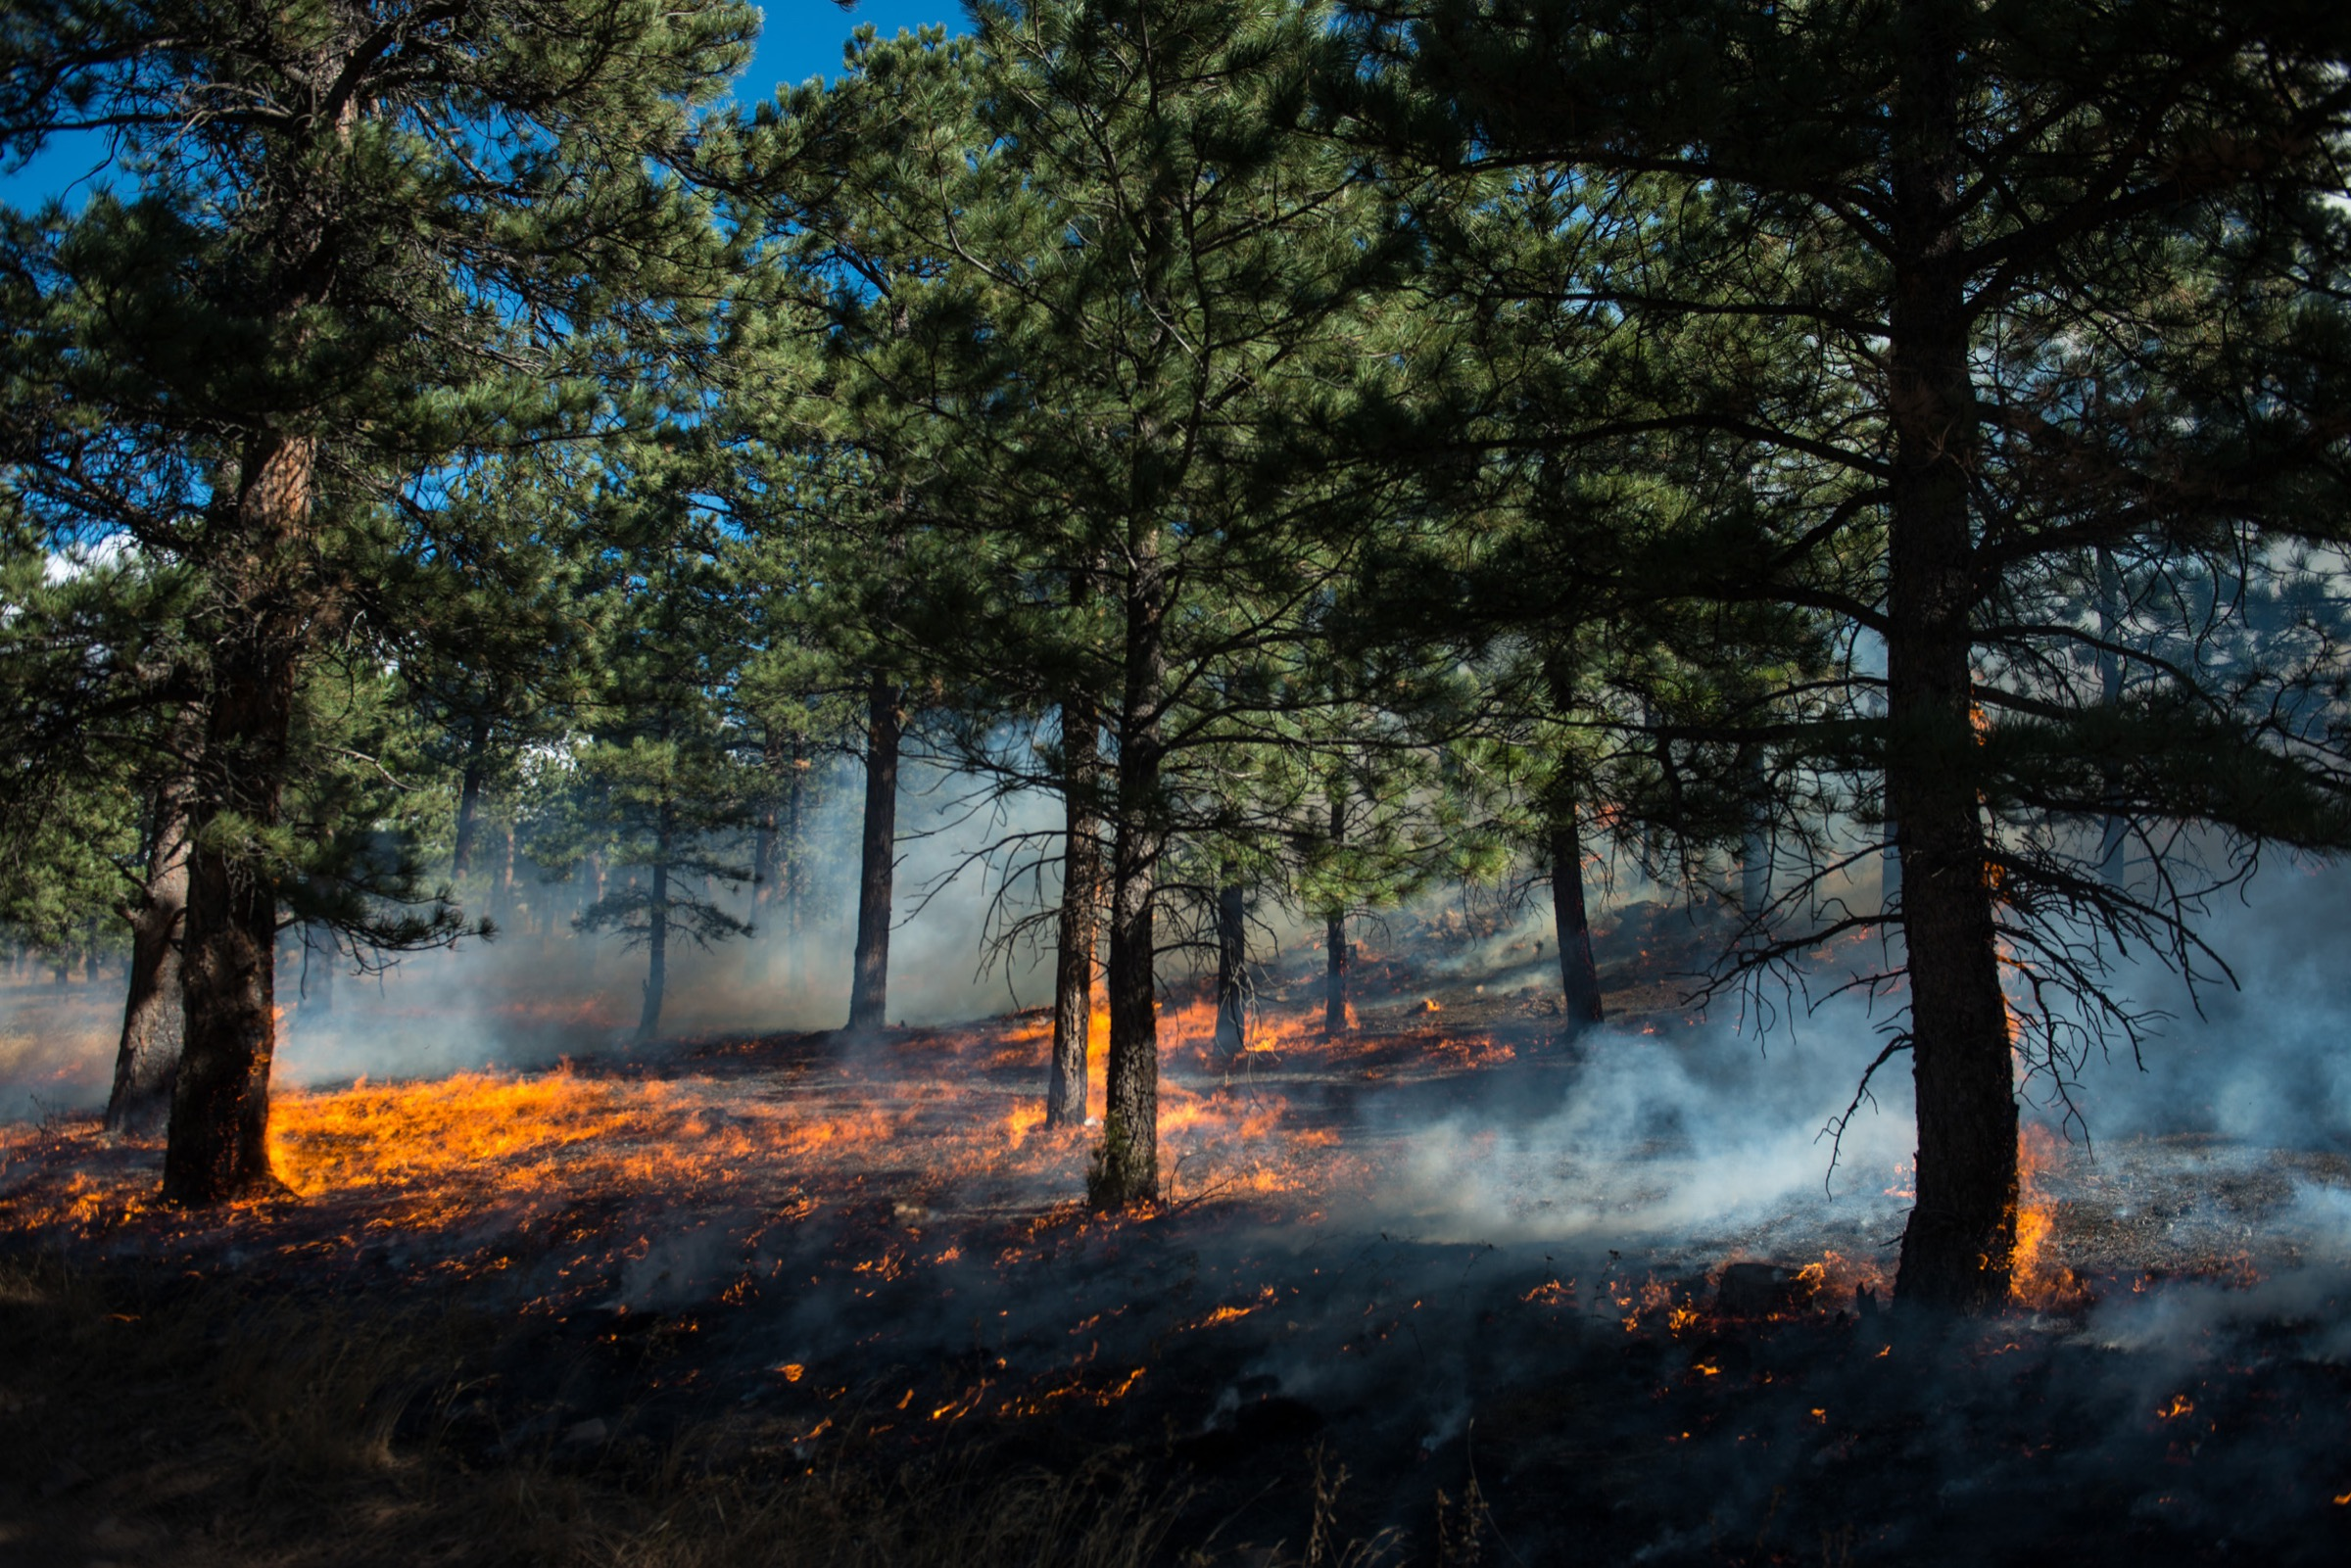 Flames creep among the ponderosa pine in Heil Valley Ranch, outside Boulder. The prescribed burn in October 2014 was the first allowed in the state since a 2012 prescribed burn re-ignited after firefighters had extinguished it. That fire, the Lower North Fork Fire, killed three residents and destroyed more than 20 homes. In forests that have a history of frequent, low-intensity ground fires, prescribed burns intentionally set by firefighters burn away excess vegetation to mimic the impact of historic ground fires and keep the forests from becoming overgrown, unhealthy and more fire-prone. Photograph by Michael Kodas